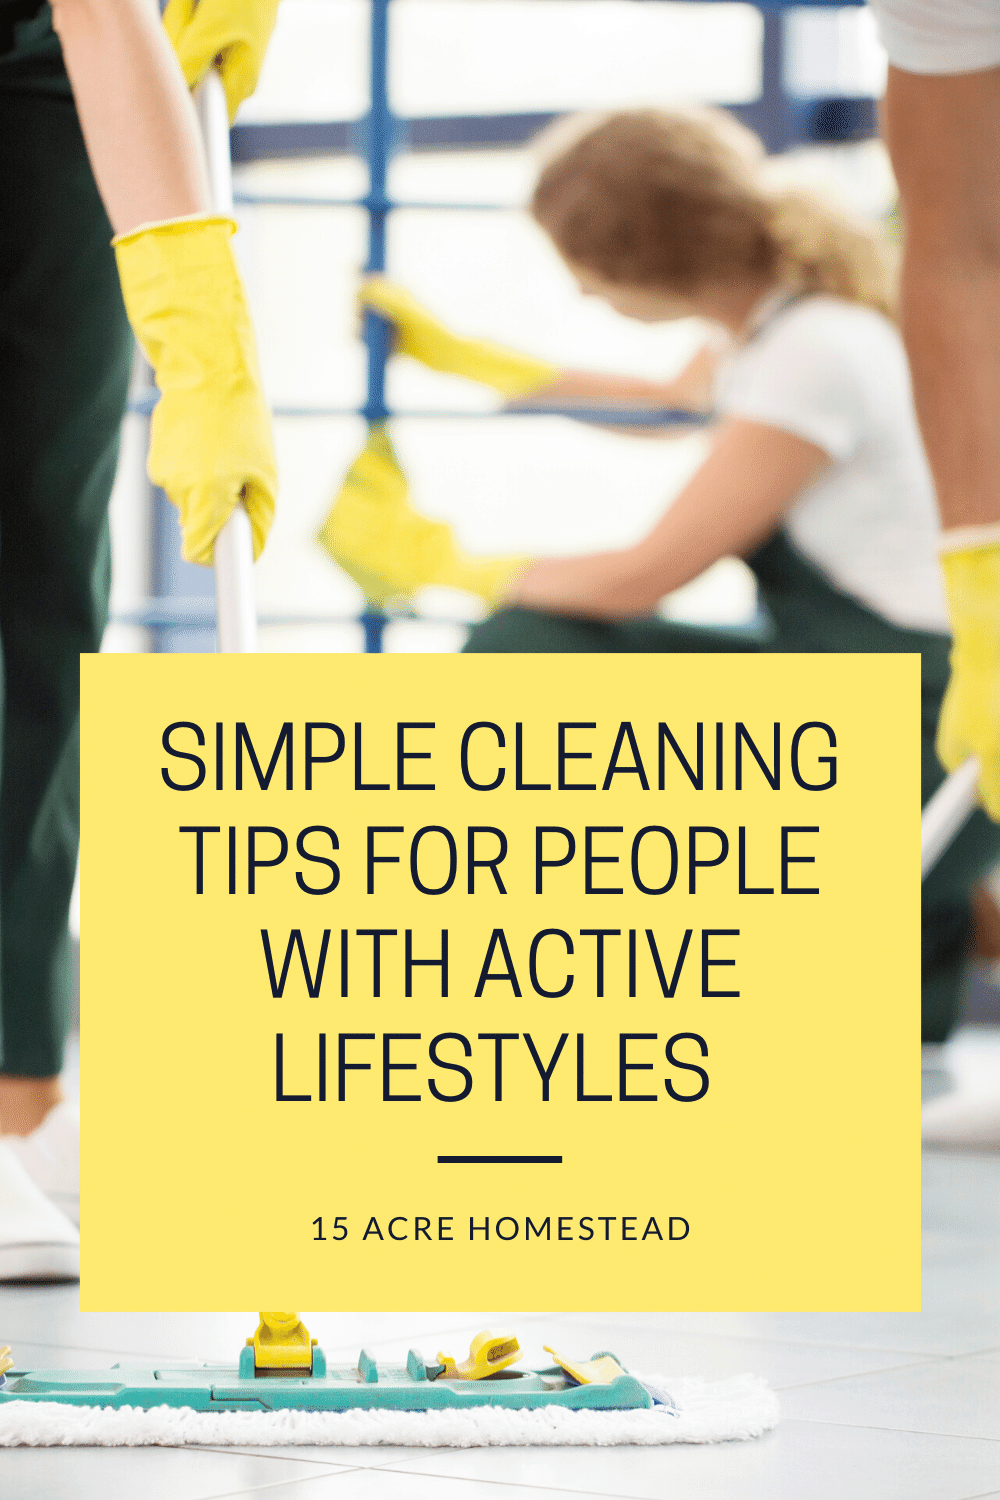 Follow these simple cleaning tips to get and keep your home tidy and clean.